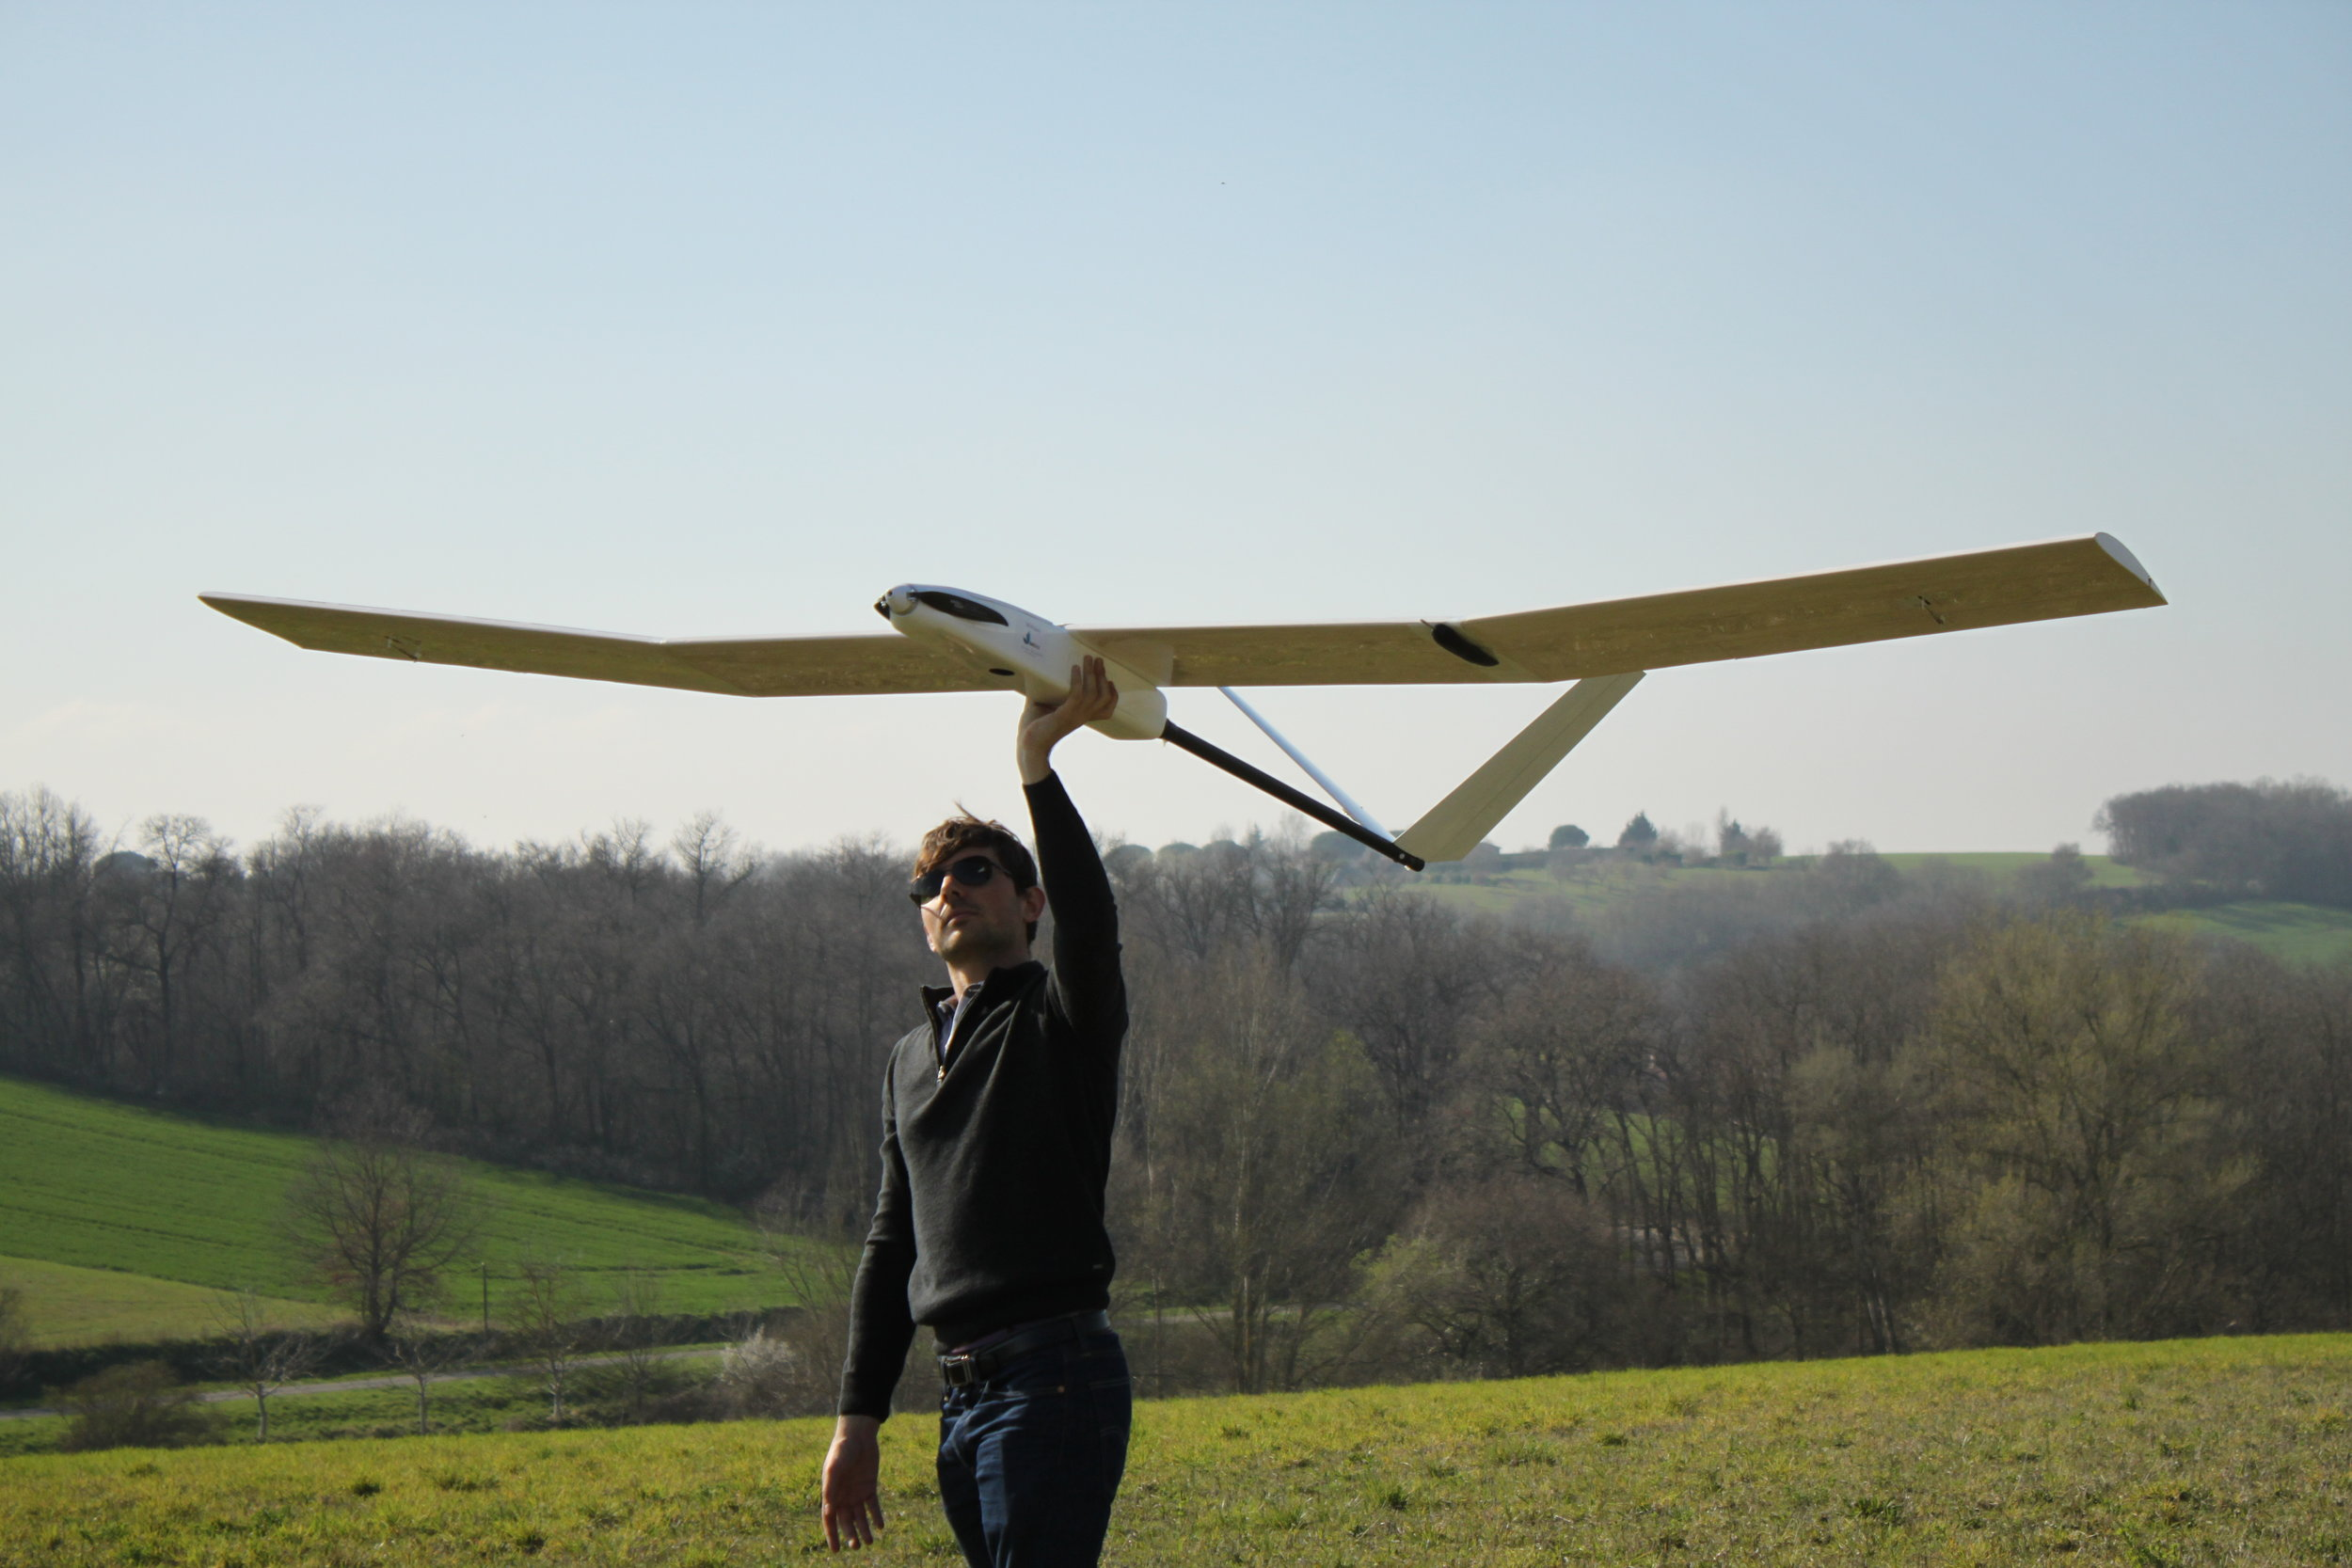 Fly like no other drone - Sunbirds is the world leader in solar powered drones. Our UAV, the SB4 Phoenix is the most enduring lightweight UAV of the market, capable of flying a entire day with a weight of only 3.5kg.Choosing our solar wing will allow your UAVs to reach the same performances and will definitely transform your flight experience.